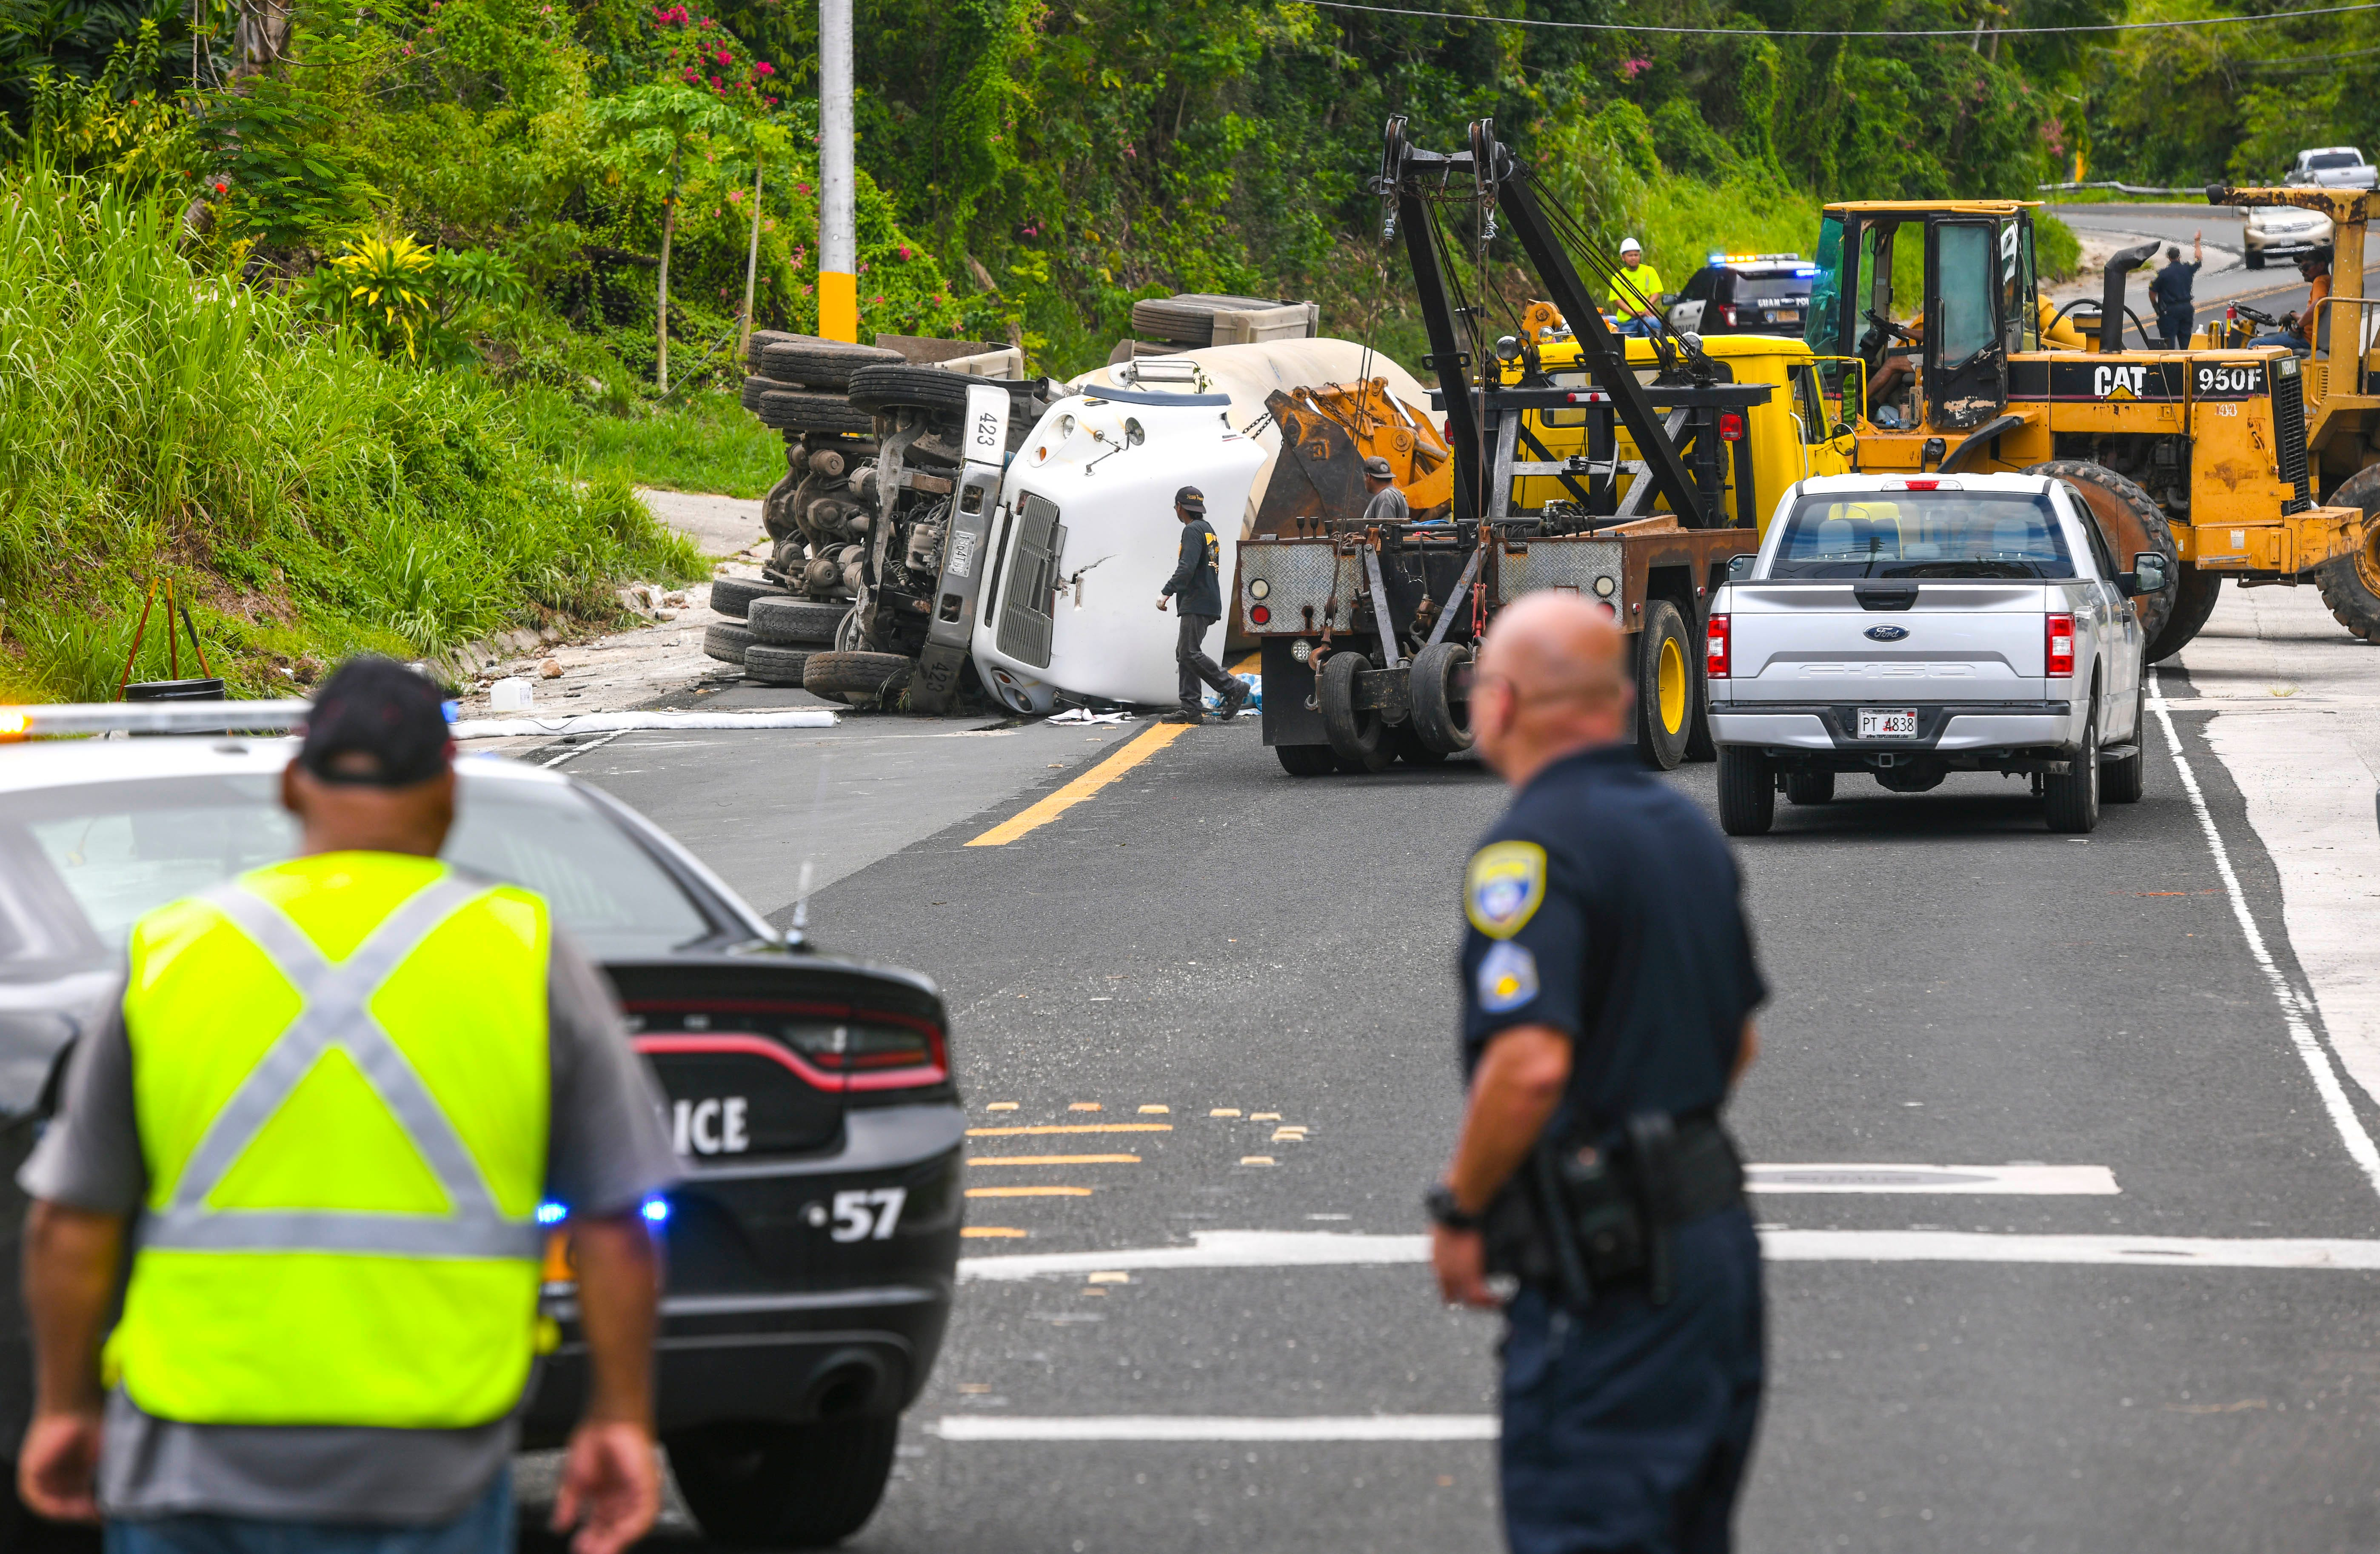 Guam Police Department officers redirect traffic on Route 6 as Department of Public Works employees and other emergency personnel respond to the crash of a tractor hauling a bulk cement transporter, near the Pacific War Museum, on Saturday, July 12, 2019.